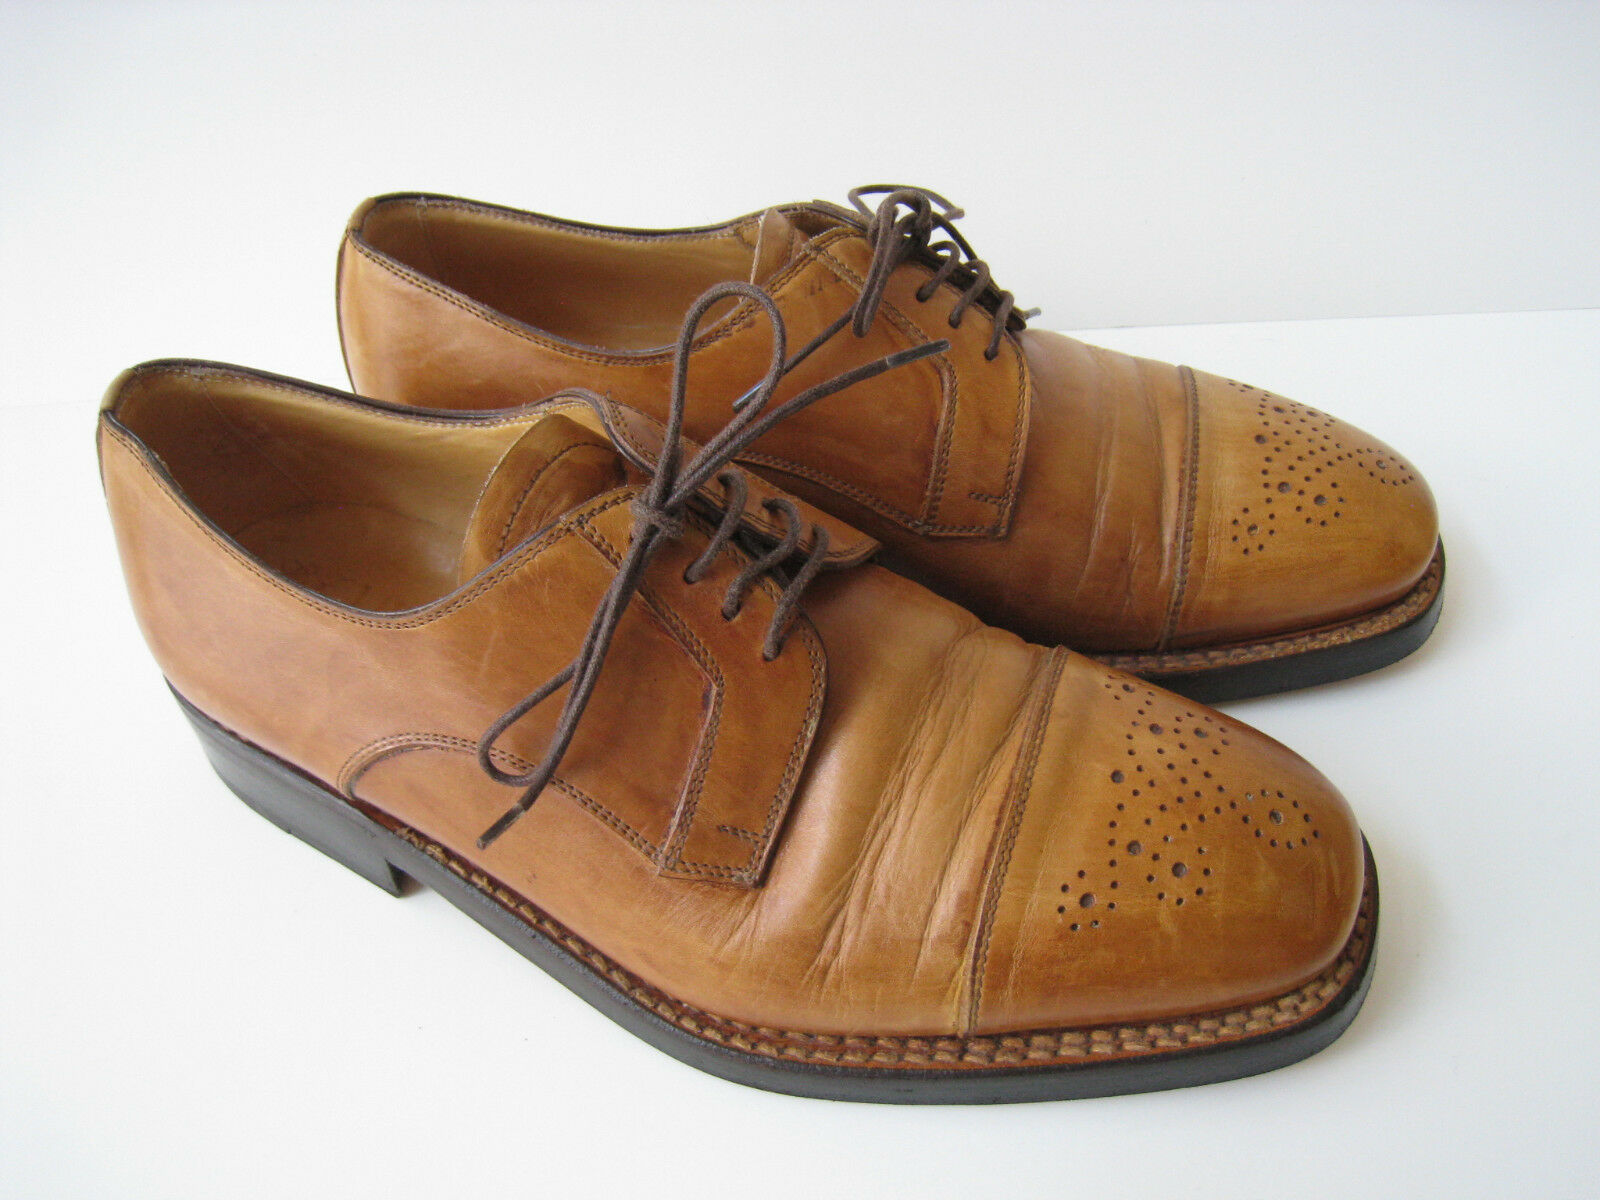 LIDFORT TAN LEATHER BROGUE CAP TOE OXFORD MEN SIZE US 7.5  MADE IN ITALY HOT